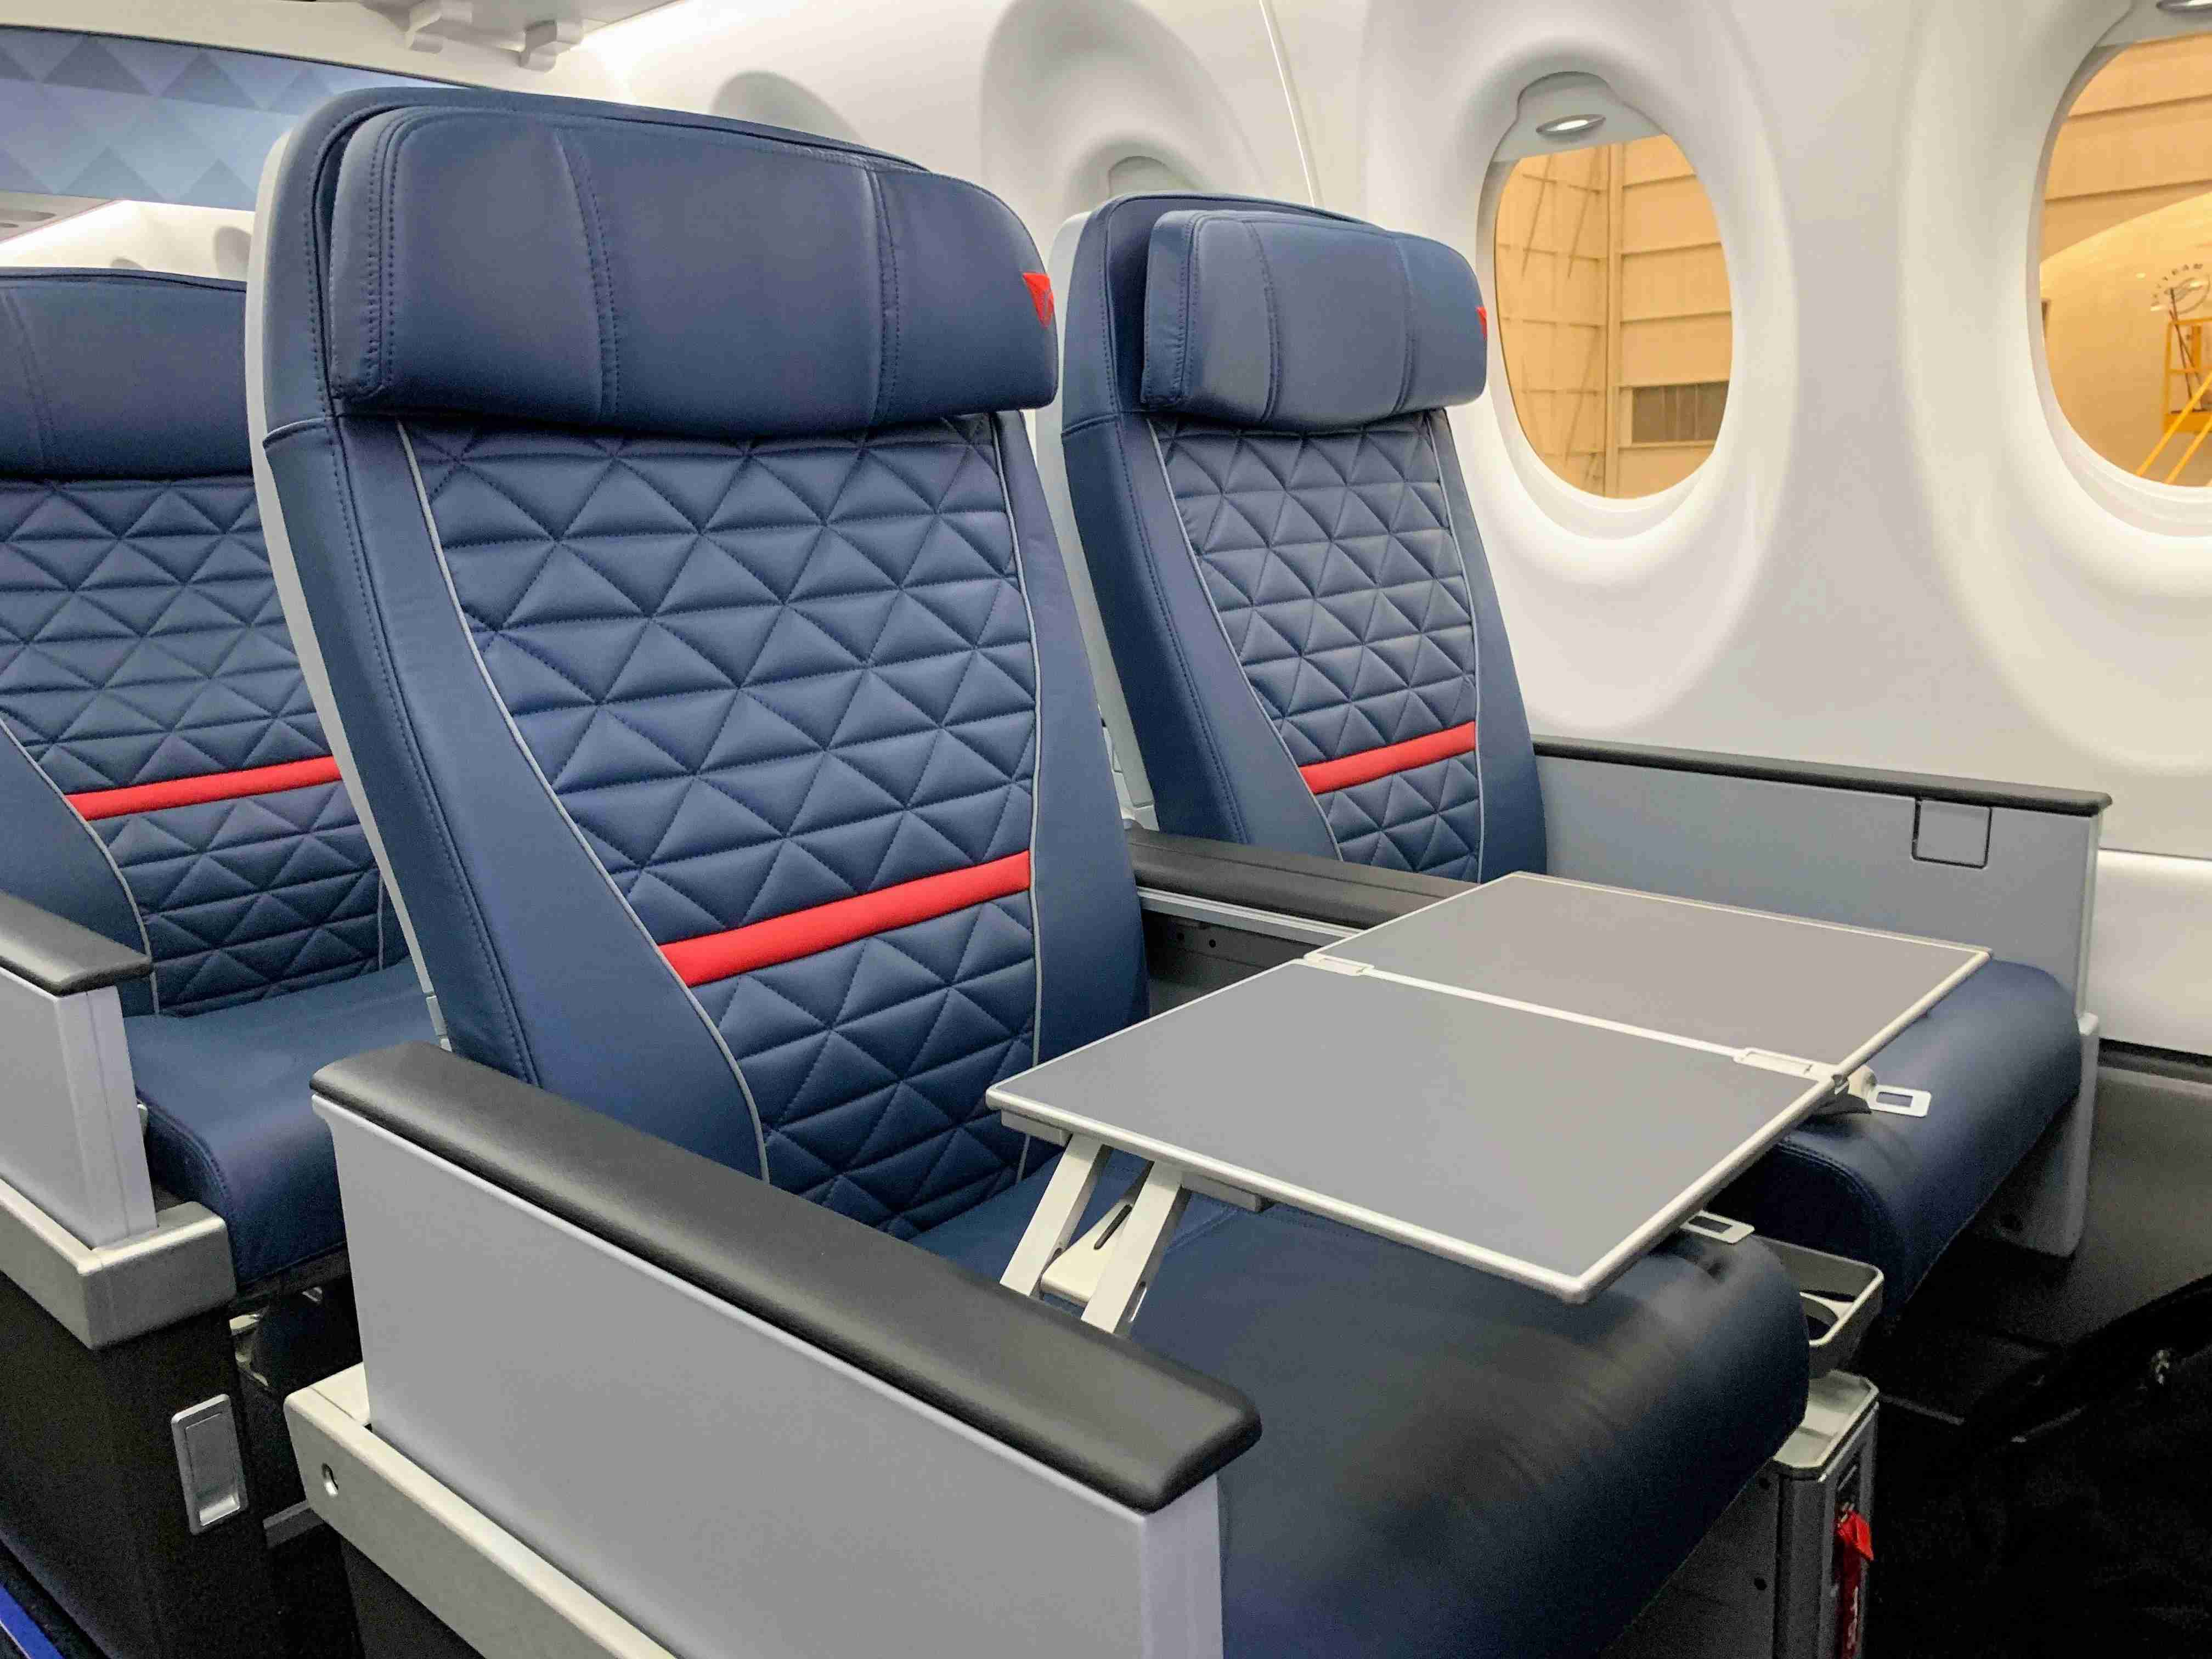 First class seating on Delta